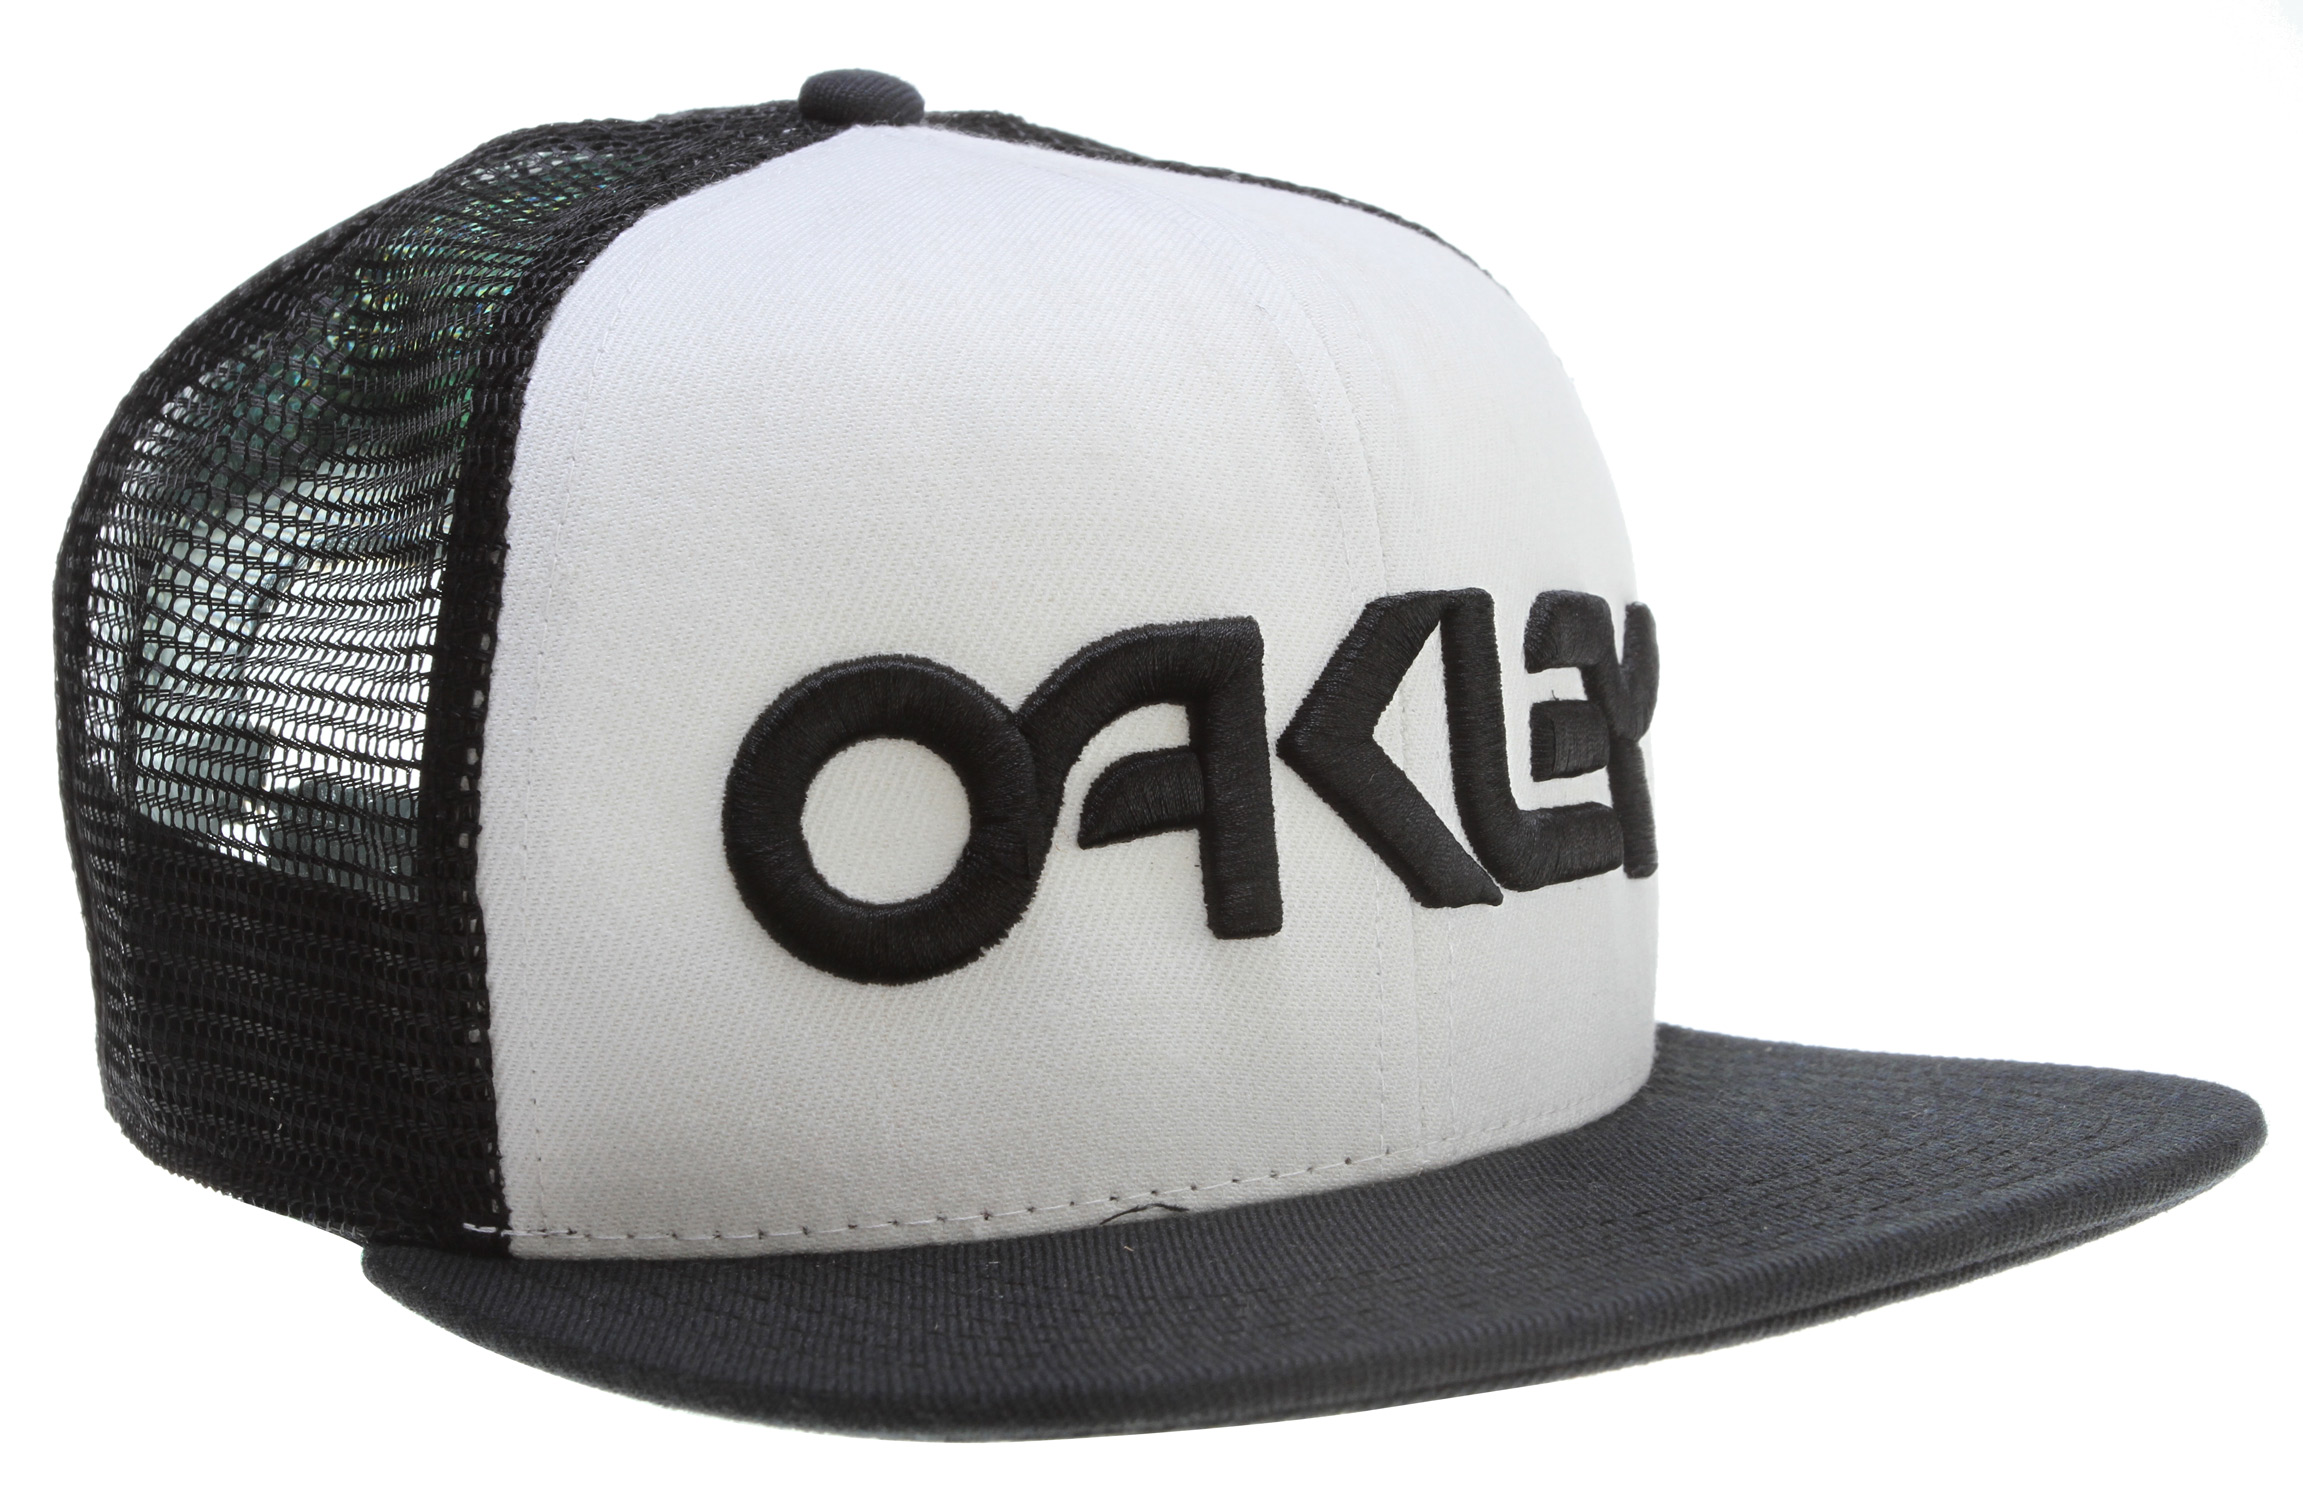 Fresh out the factory is the equally as fresh Oakley Factory Trucker Cap. Oakley is a heavyweight in the game and that same reputation for quality can be observed in the classic 3D embroidered logo featured on this trucker hat. Trucker design provides a partial mesh which results in comfortable and cool ventilation. Adjustable fit for all sizes big, small, and in between.Key Features of the Oakley Factory Trucker Cap: Adjustable fit Subtly contoured brim Structured polyester mesh 3D logo embroidery on crown - $25.00